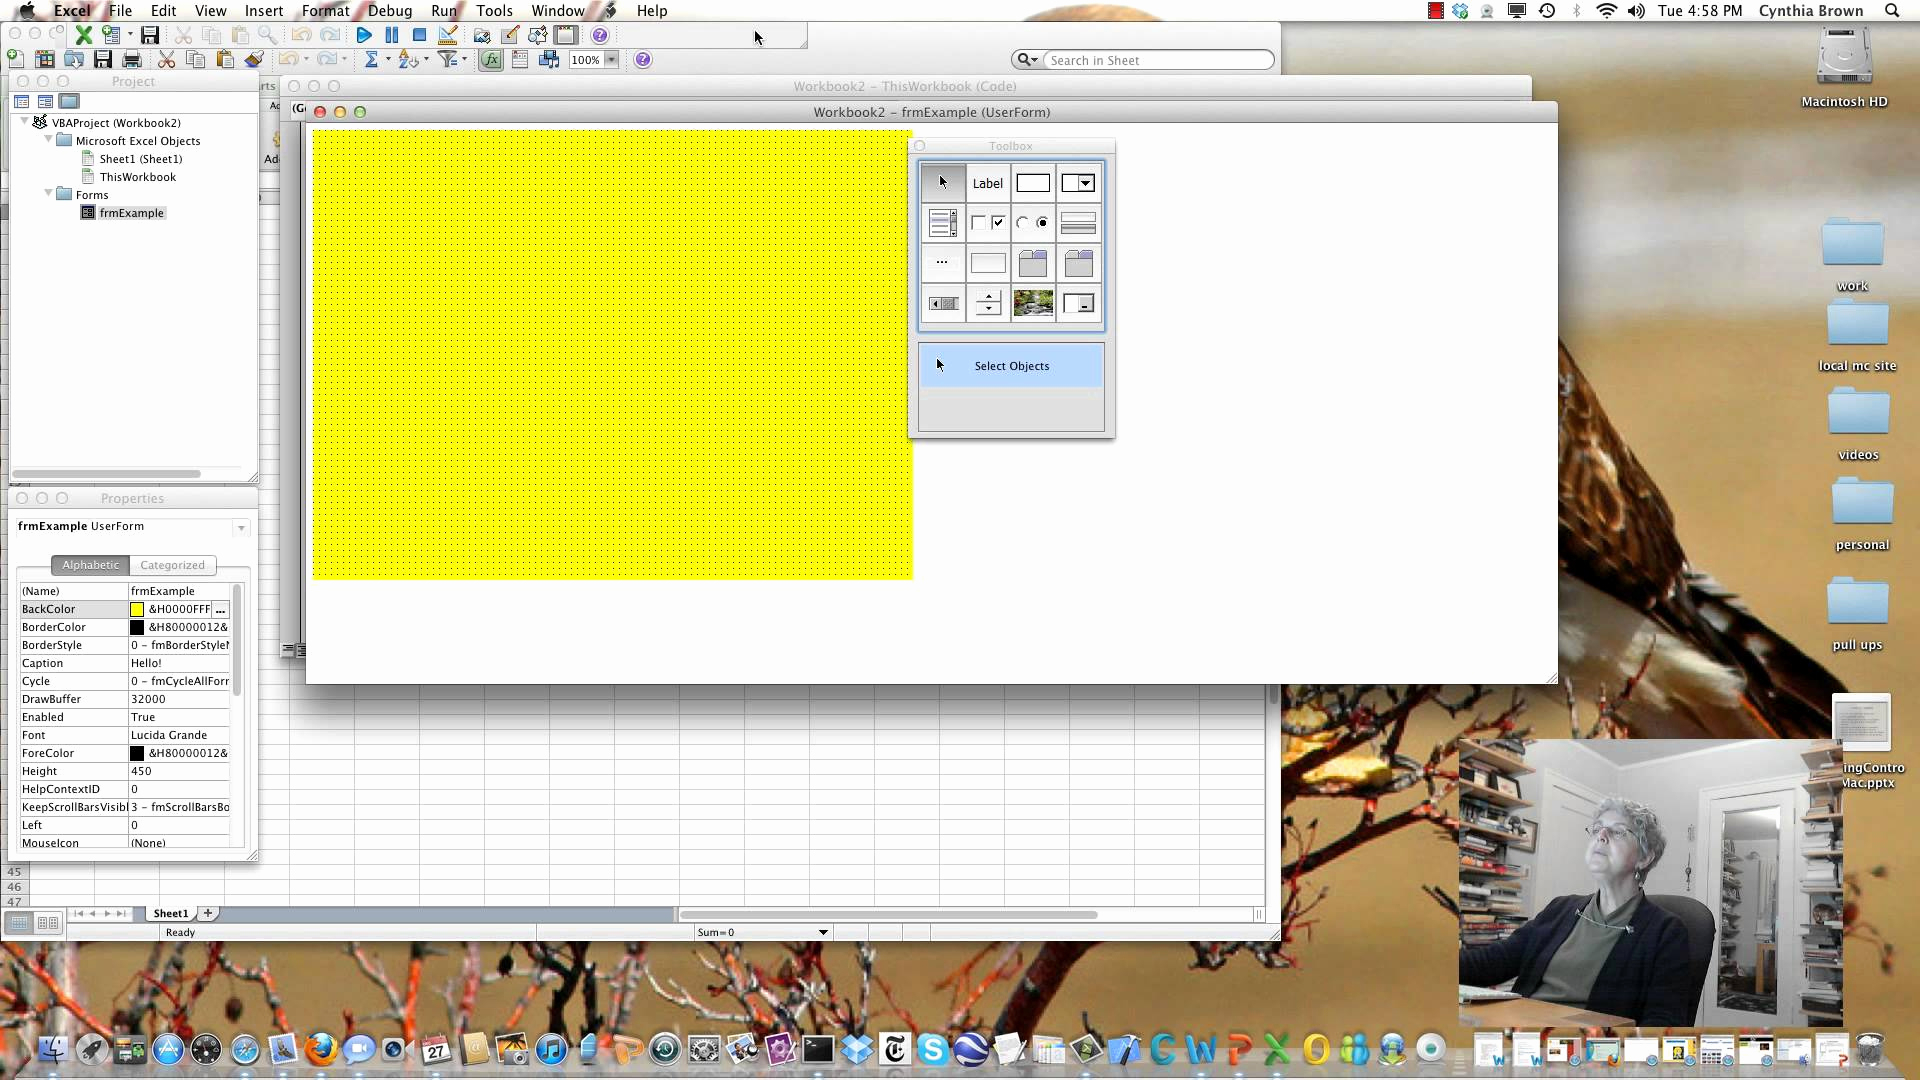 Excel Userform Spreadsheet Control With Excel Userform Spreadsheet Control Awesome Create User Form Mac Of